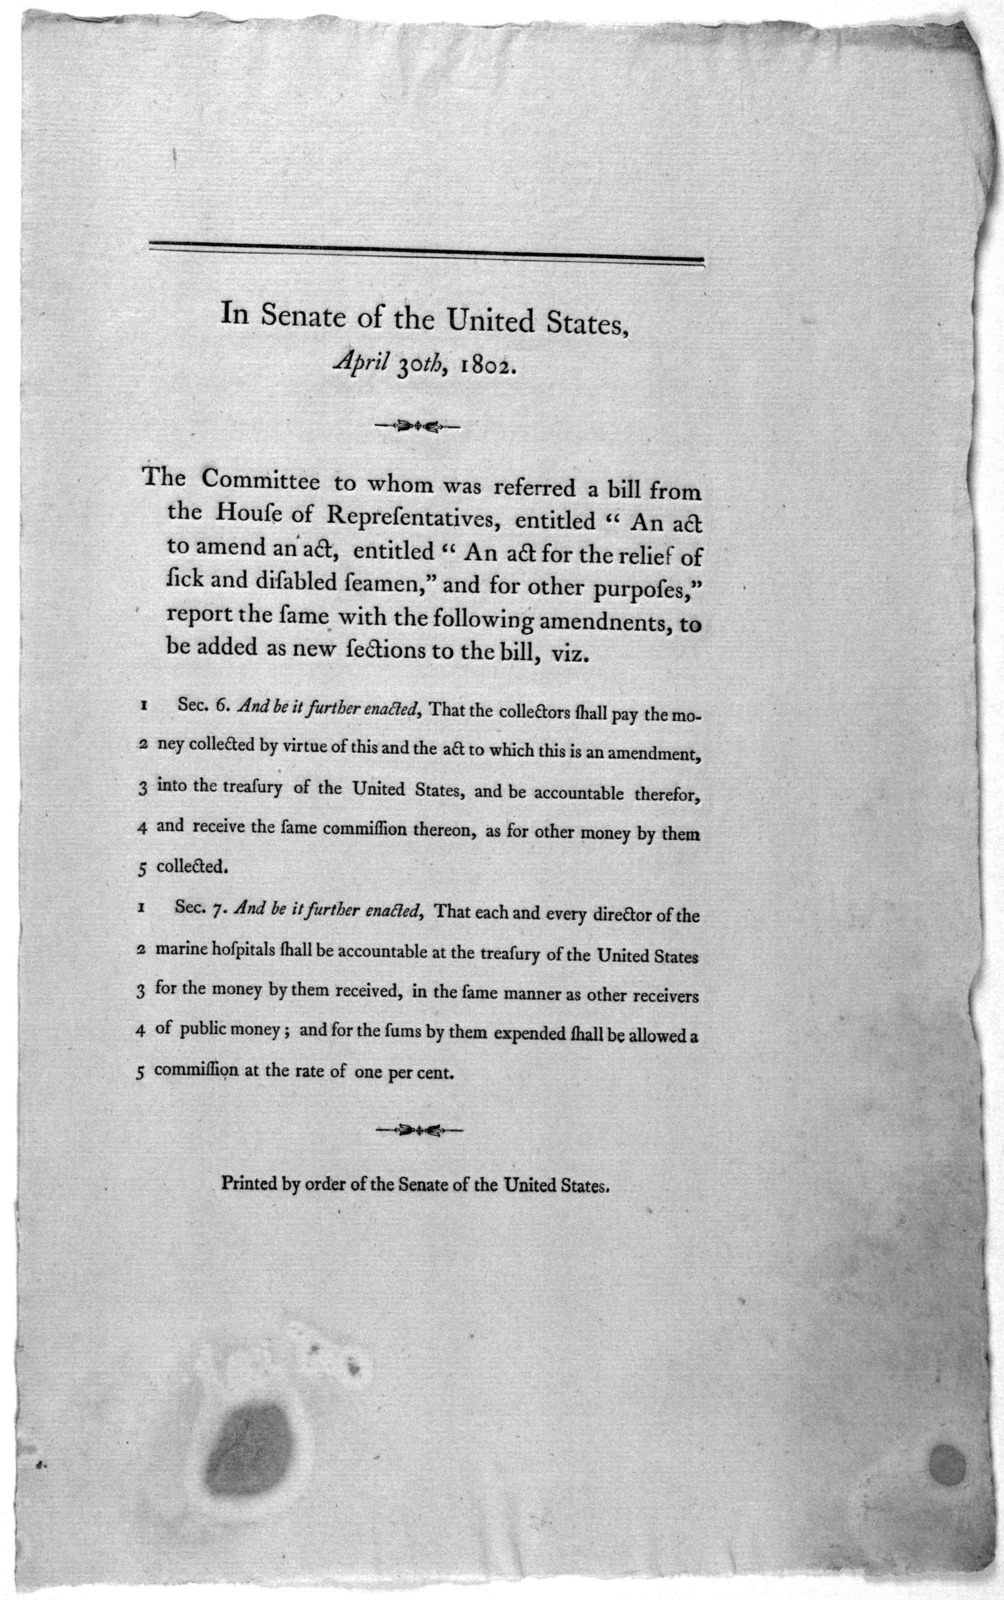 """In Senate of the United Statds, April 30th, 1802. The Committee to whom was referred a bill from the House of representatives, entitled """"An act to amend an act, entitled,""""An act for the relief of sick and disabled seamen,"""" and for other purposes"""